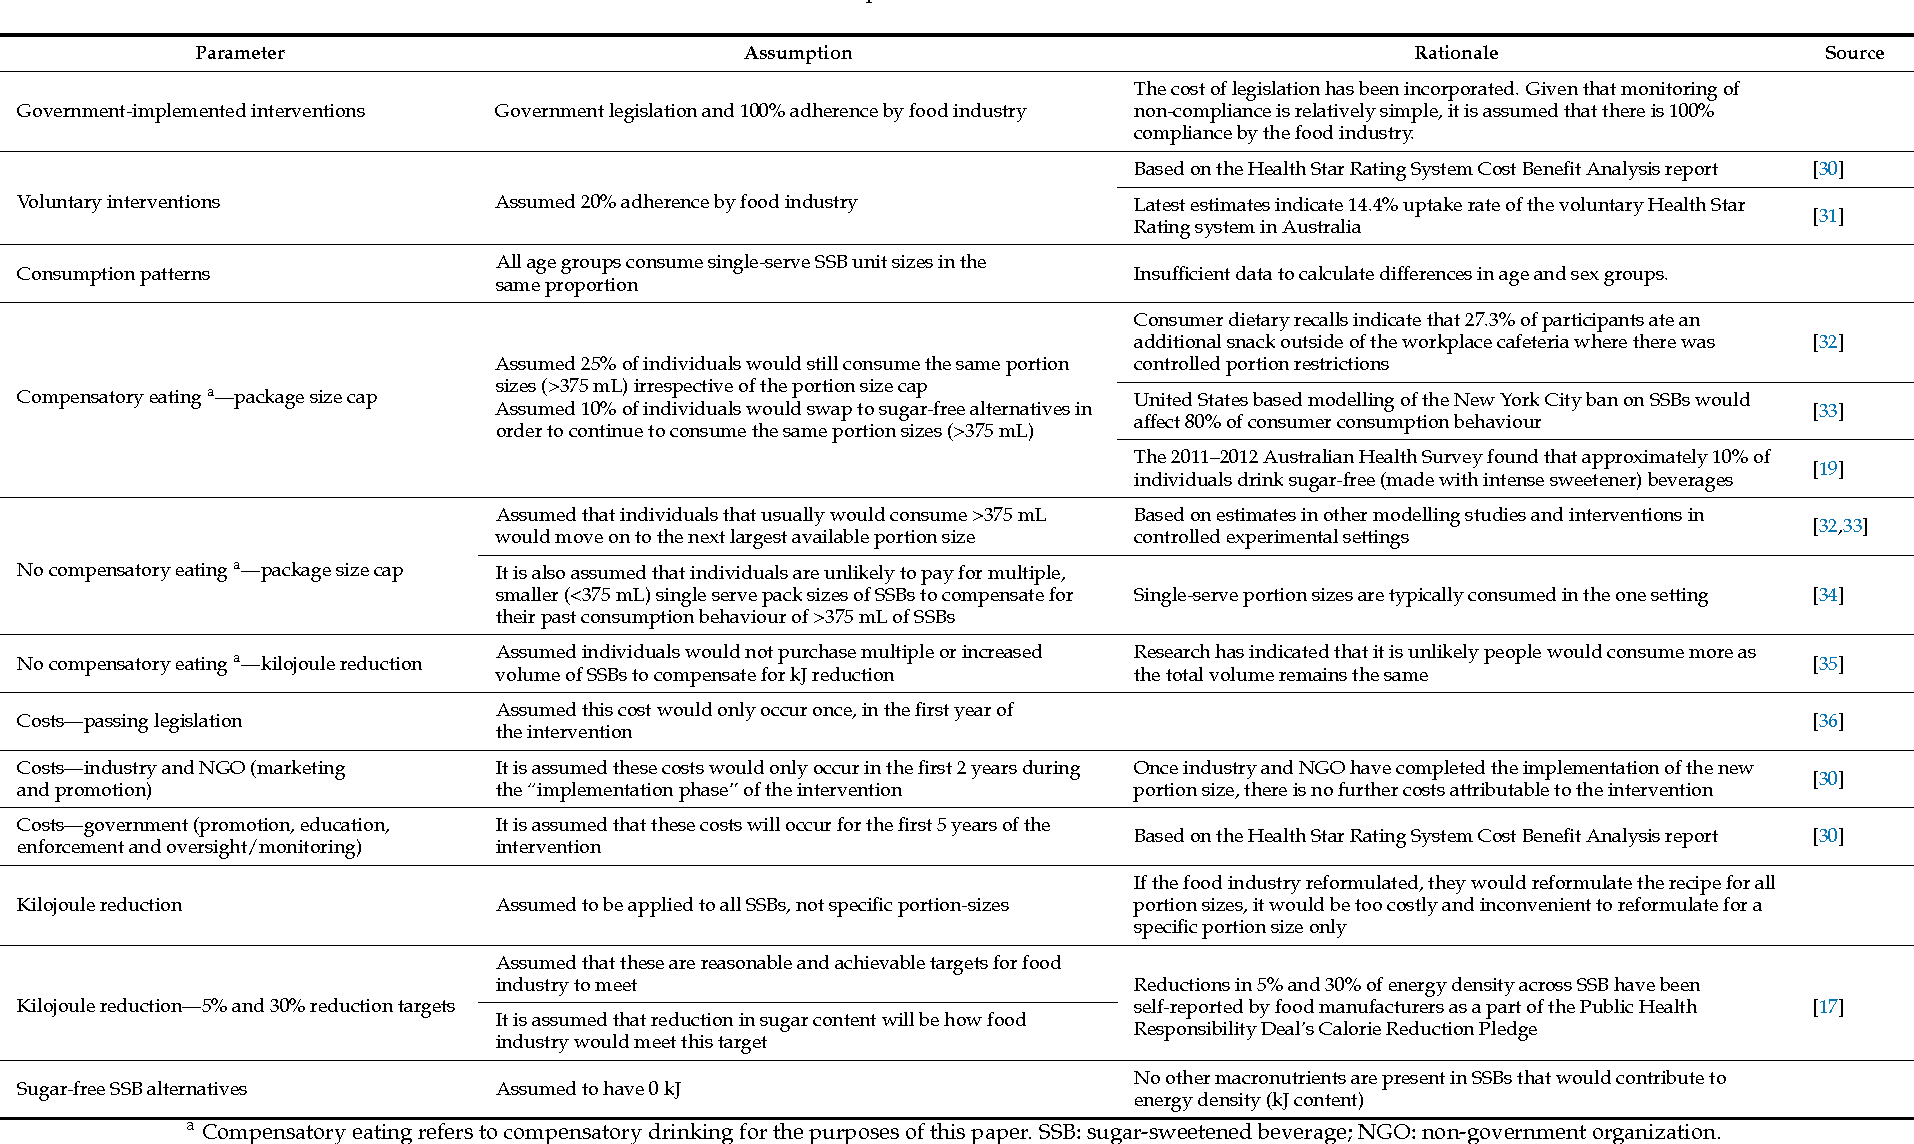 Table 2. Parameters, assumptions and rationale for modelled scenarios.